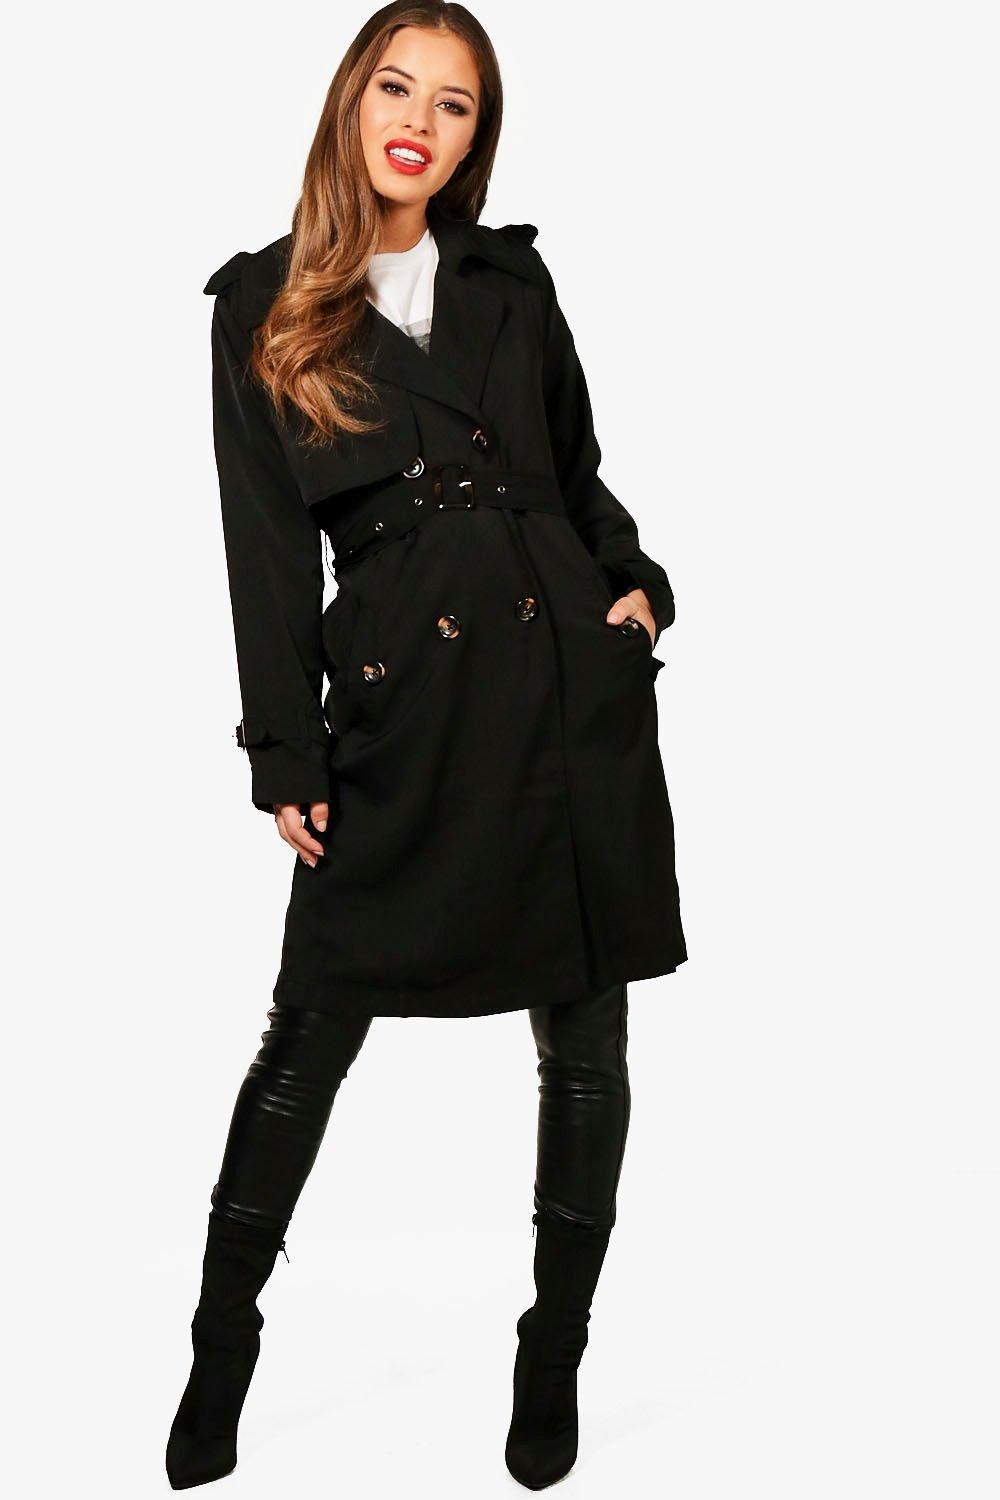 c9fbe30f2fdc Boohoo Petite Longline Trench in Black - Lyst